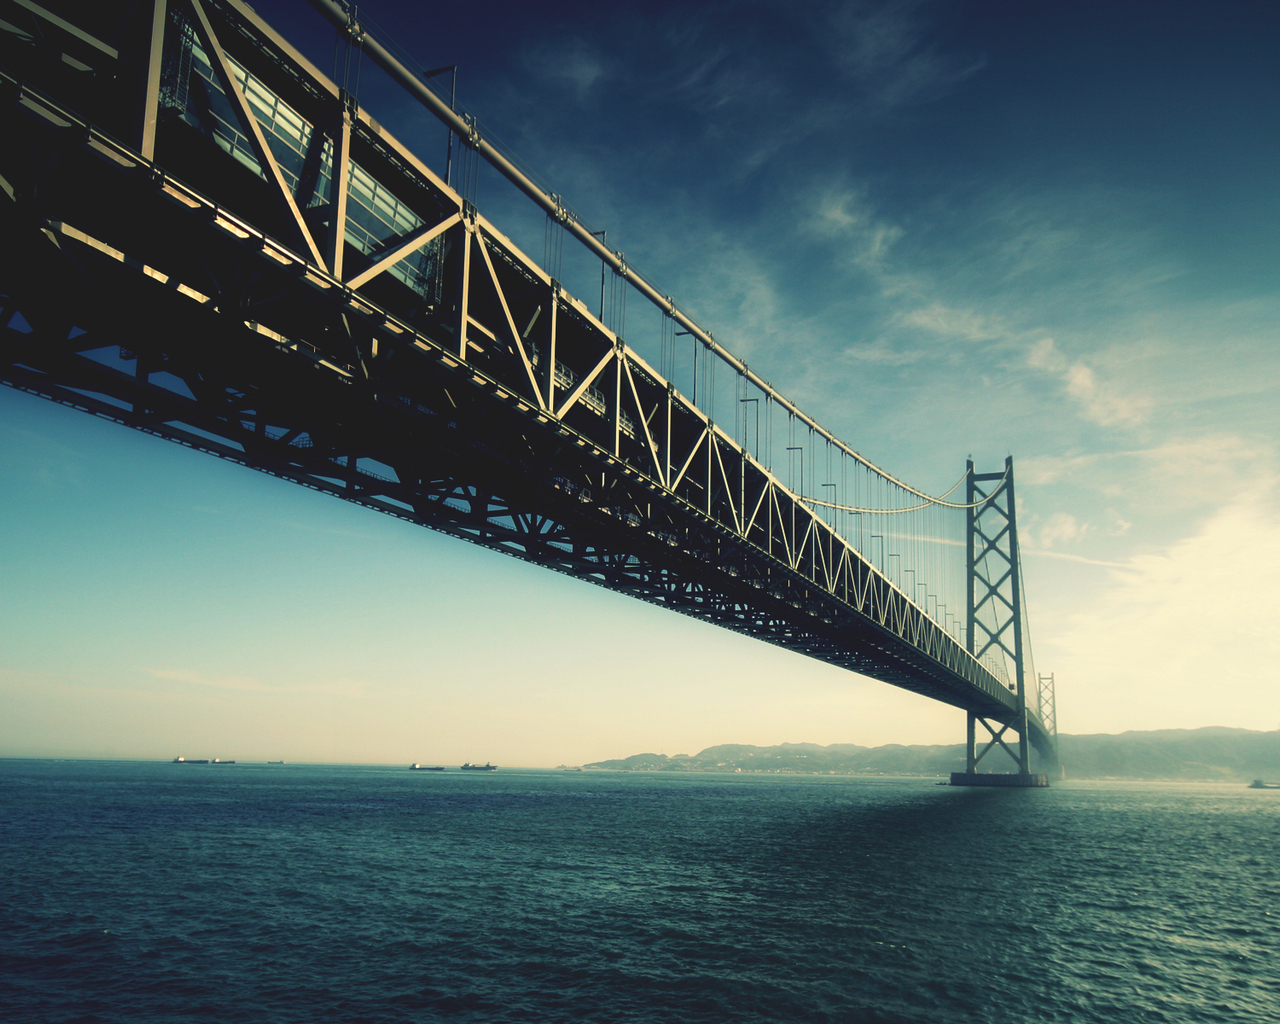 Akashi-Kaikyo Bridge in Japan